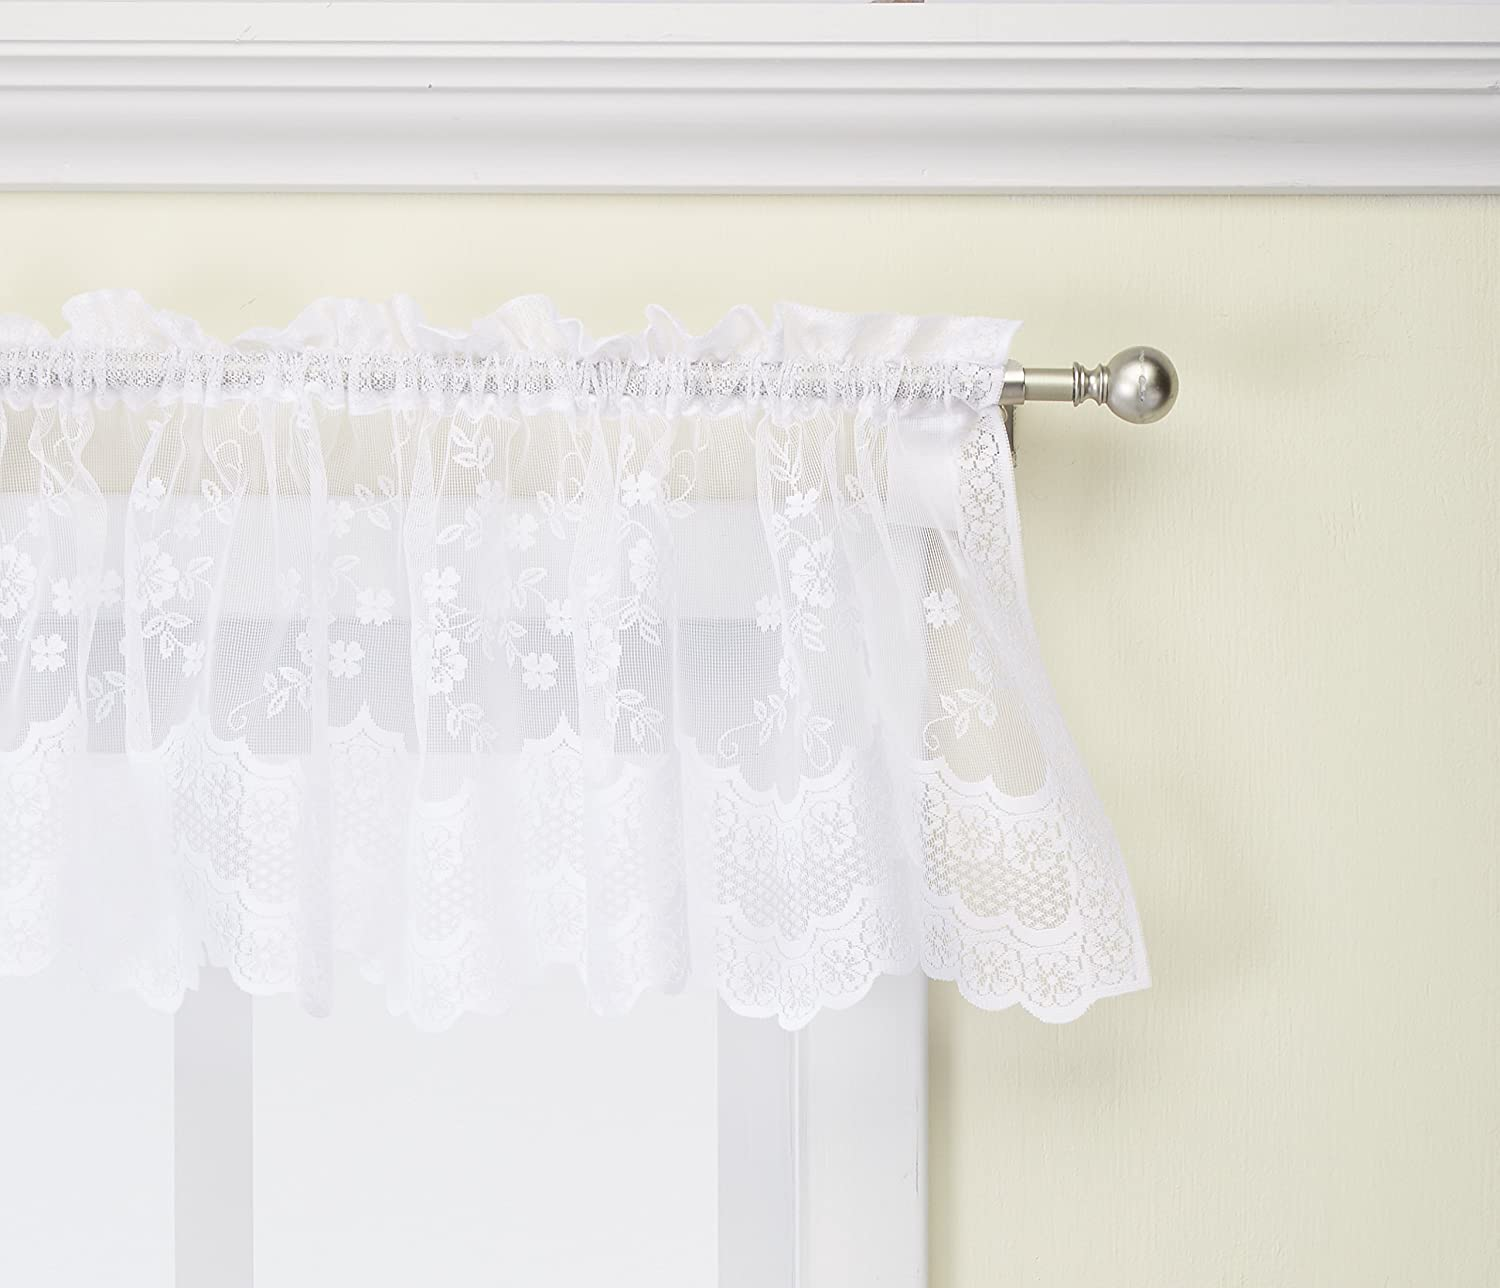 Commonwealth Home Fashions Mona Lisa Jacquard Scalloped Lace Valance, 56 x 15 White